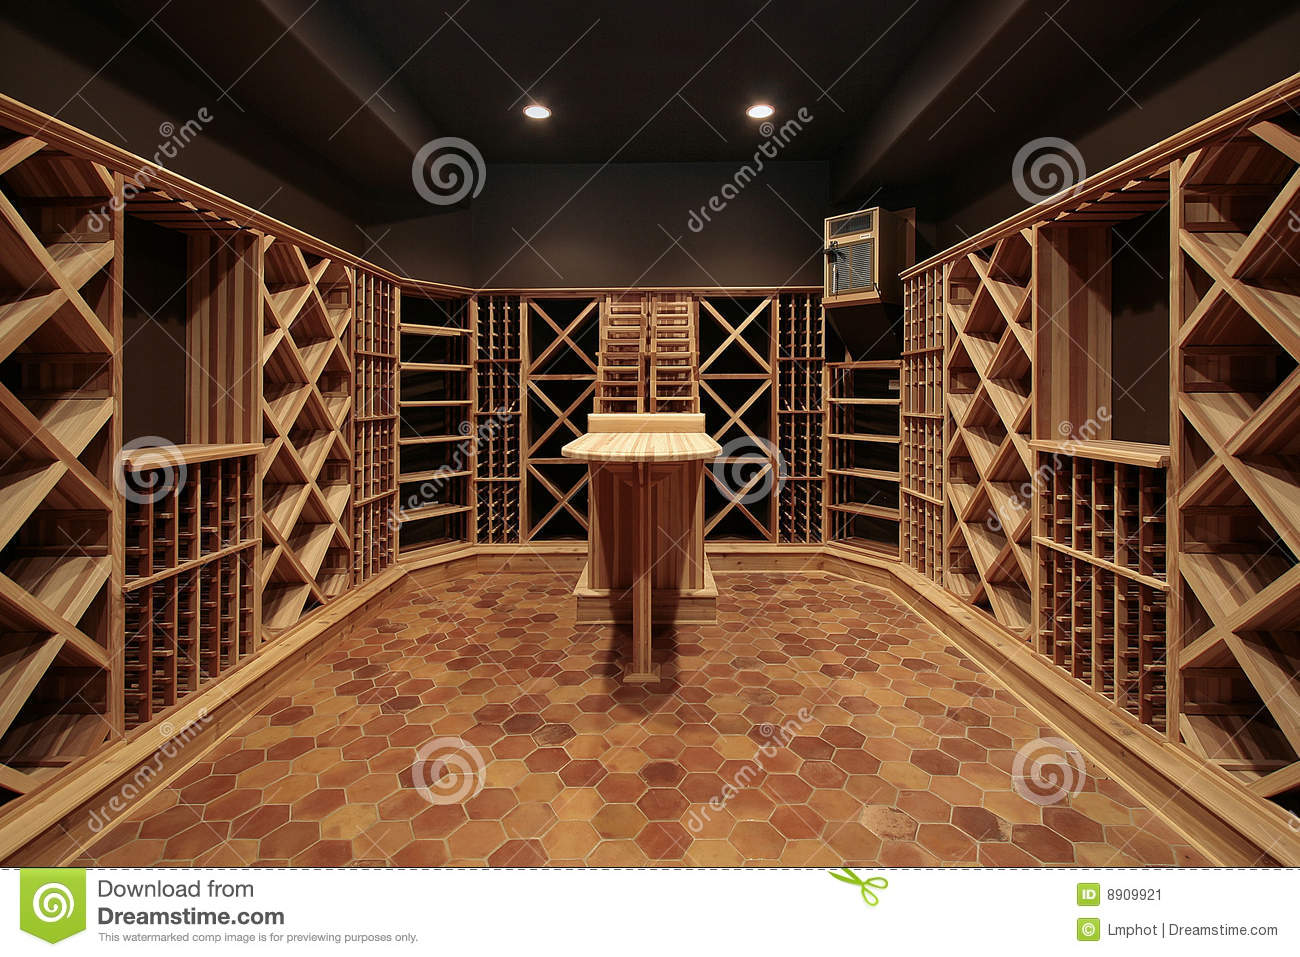 bois de vin de cave image stock image du d cor. Black Bedroom Furniture Sets. Home Design Ideas